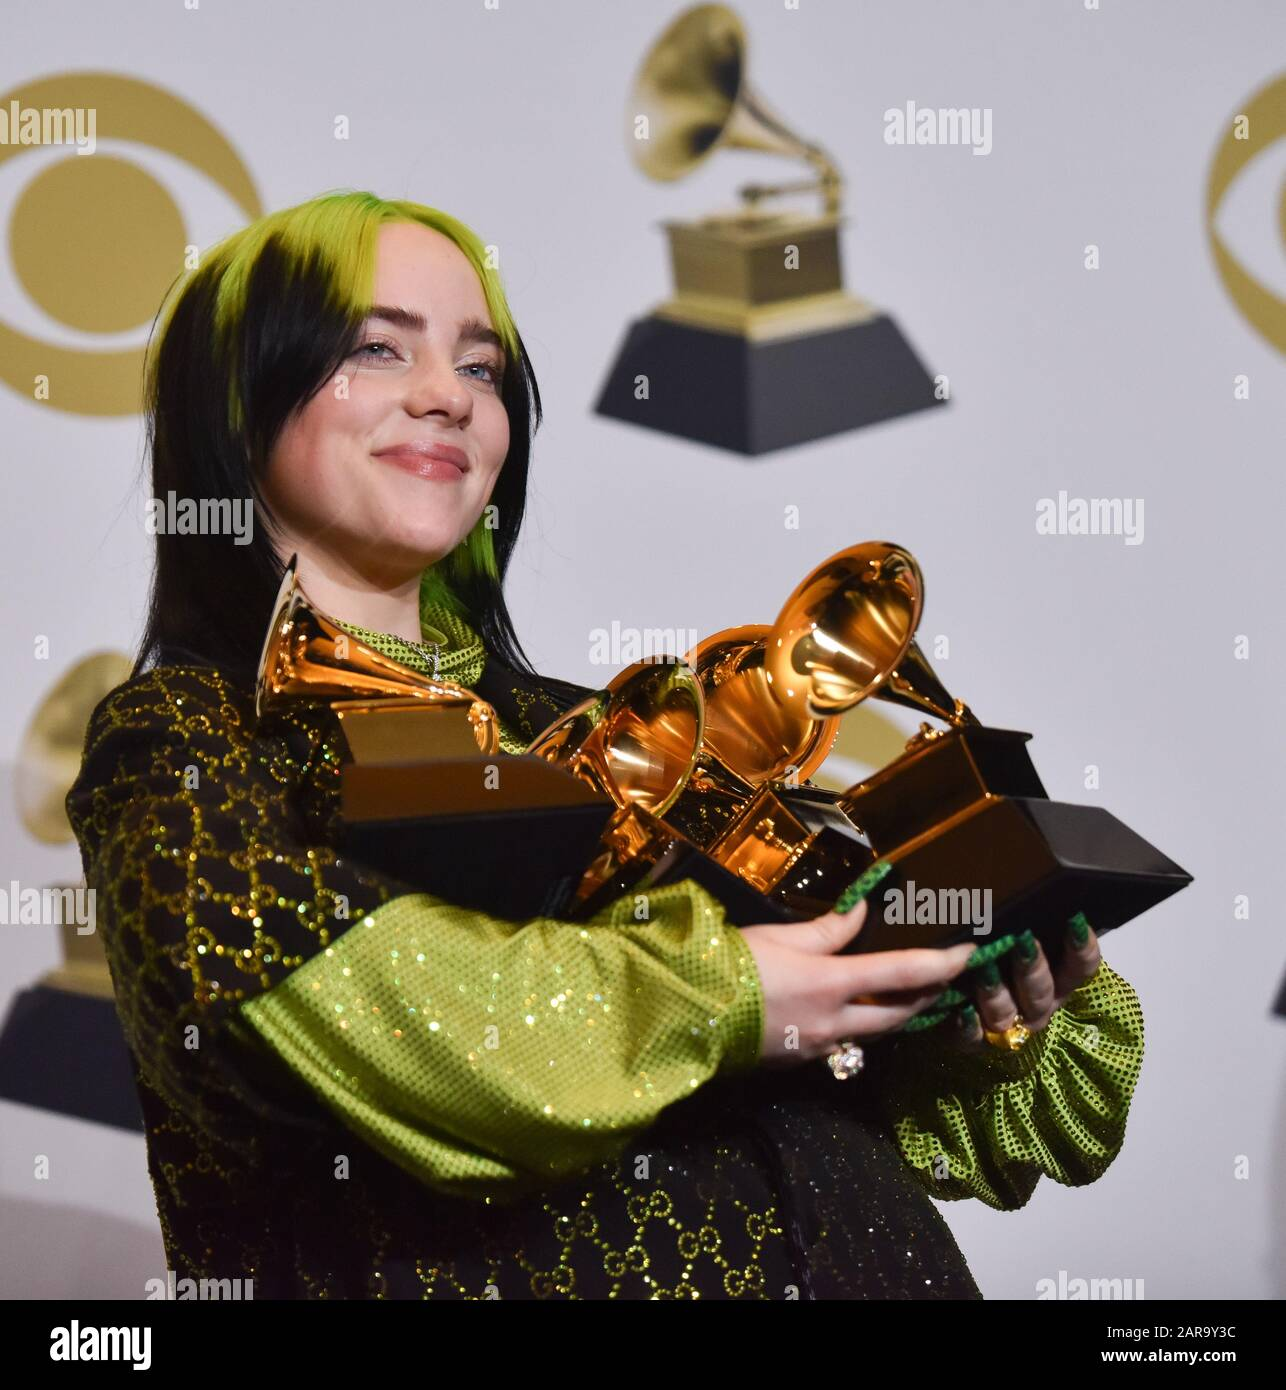 Los Angeles, CA, USA. 26th Jan 2020. Billie Eilish appears backstage with her awards for Record of the Year for 'Bad Guy, ' Album of the Year for 'when we all fall asleep, where do we go?, ' Song of the Year for 'Bad Guy, ' Best New Artist and Best Pop Vocal Album for 'when we all fall asleep, where do we go?, ' during the 62nd annual Grammy Awards held at Staples Center in Los Angeles on Sunday, January 26, 2020 . Photo by Christine Chew/UPI Credit: UPI/Alamy Live News Stock Photo